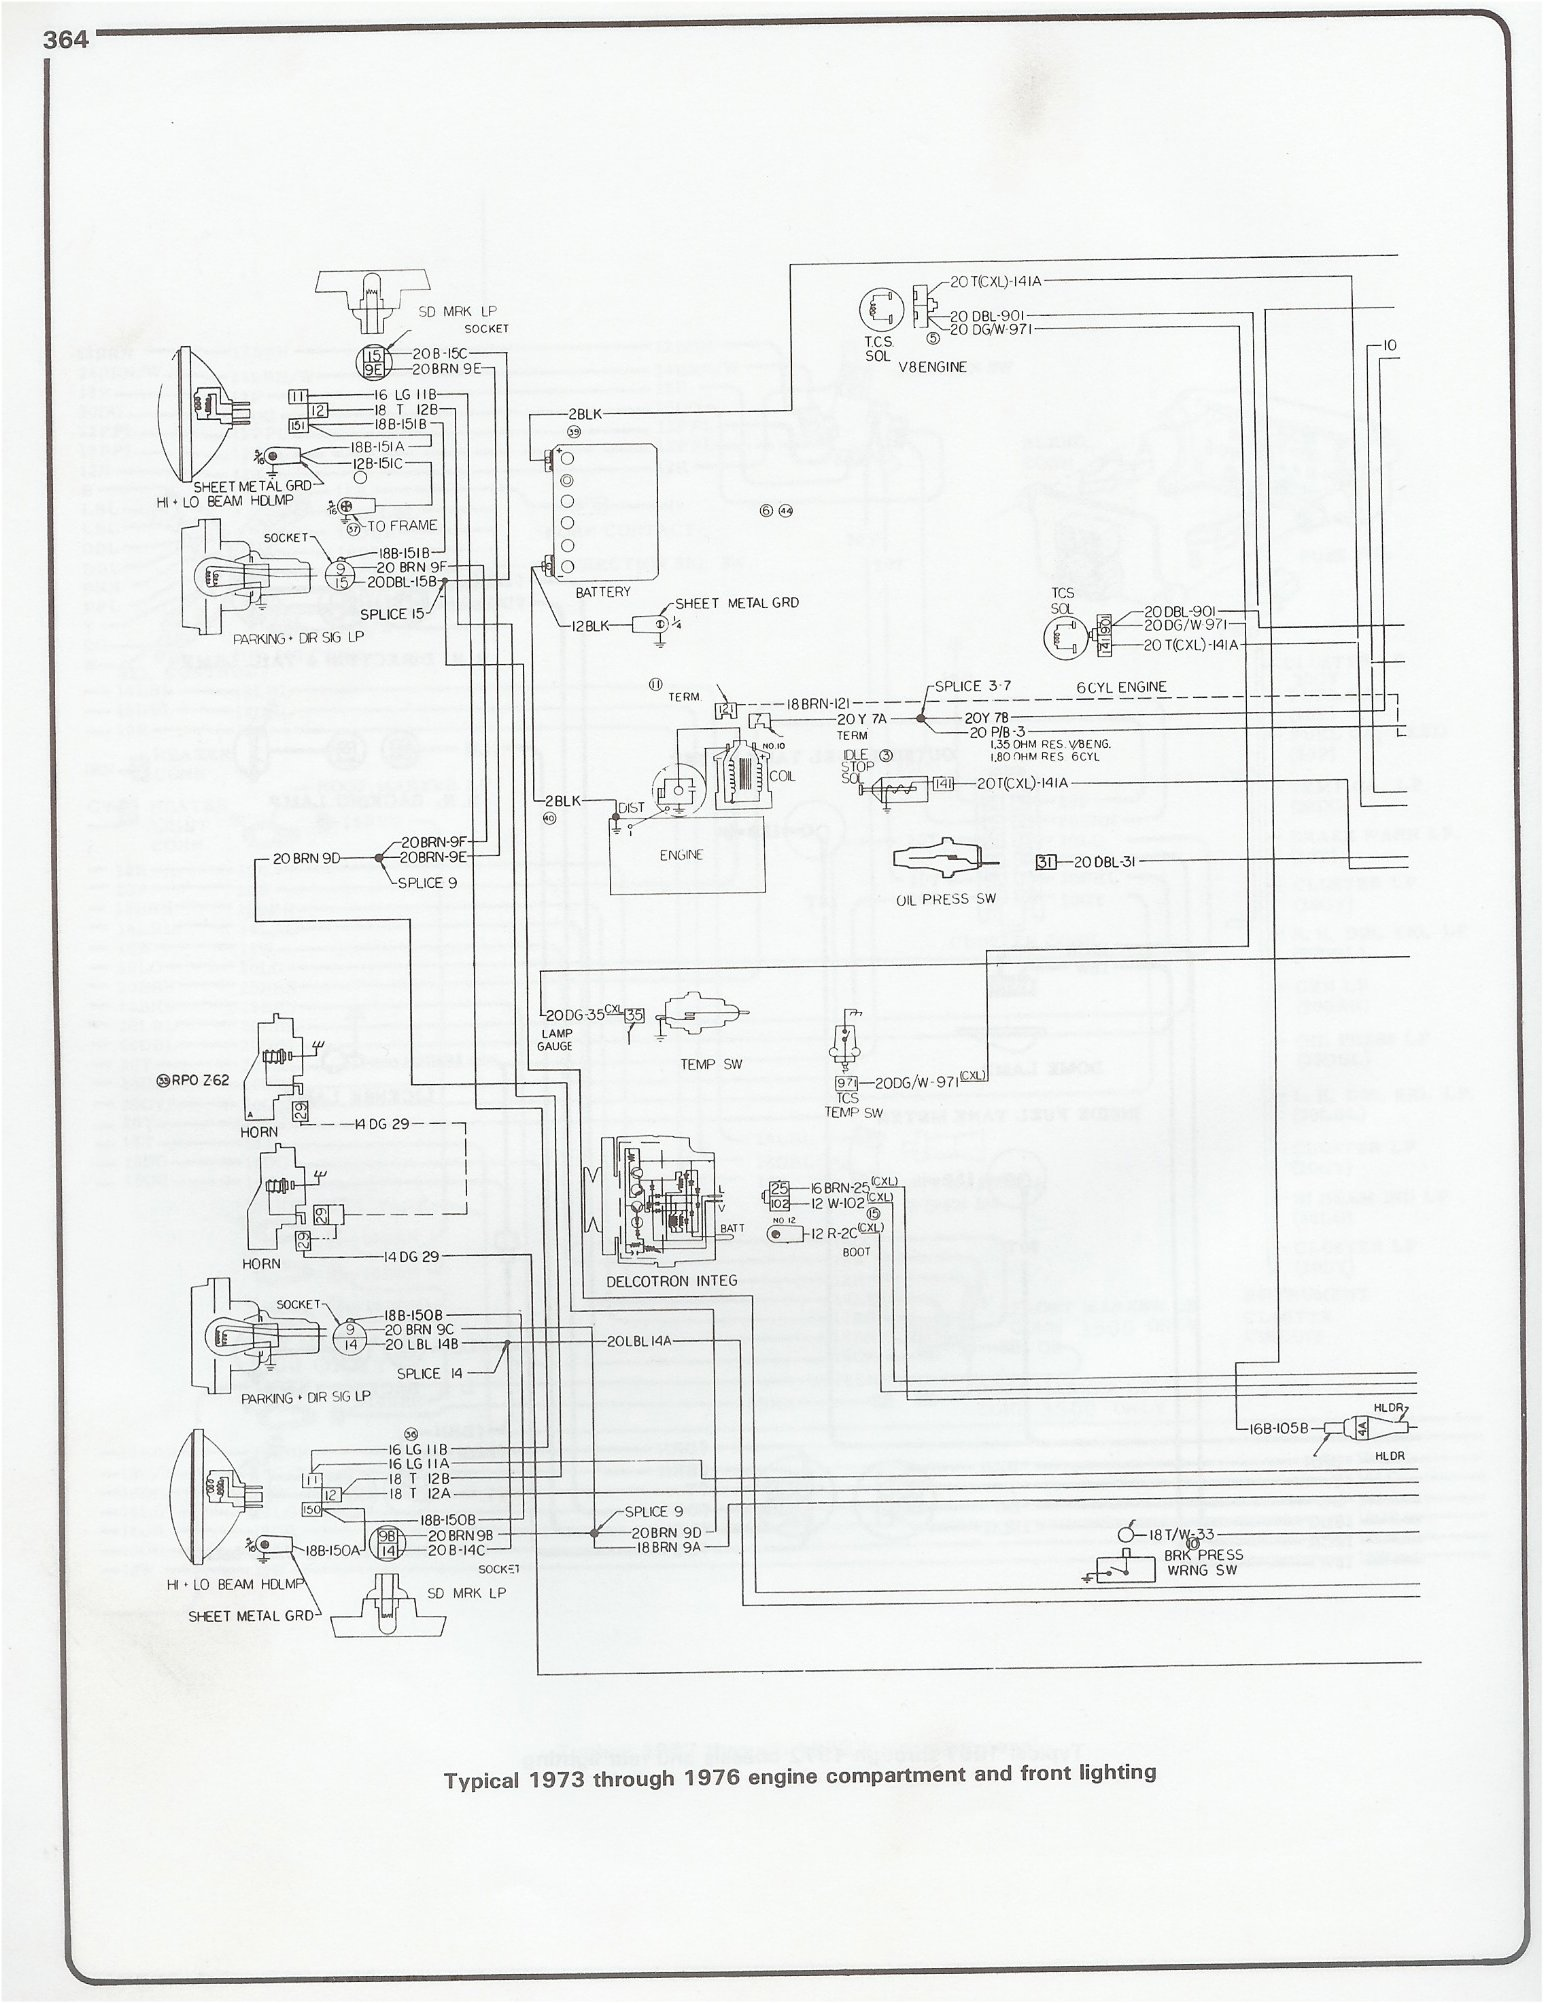 73 76_eng_frt_light complete 73 87 wiring diagrams  at highcare.asia